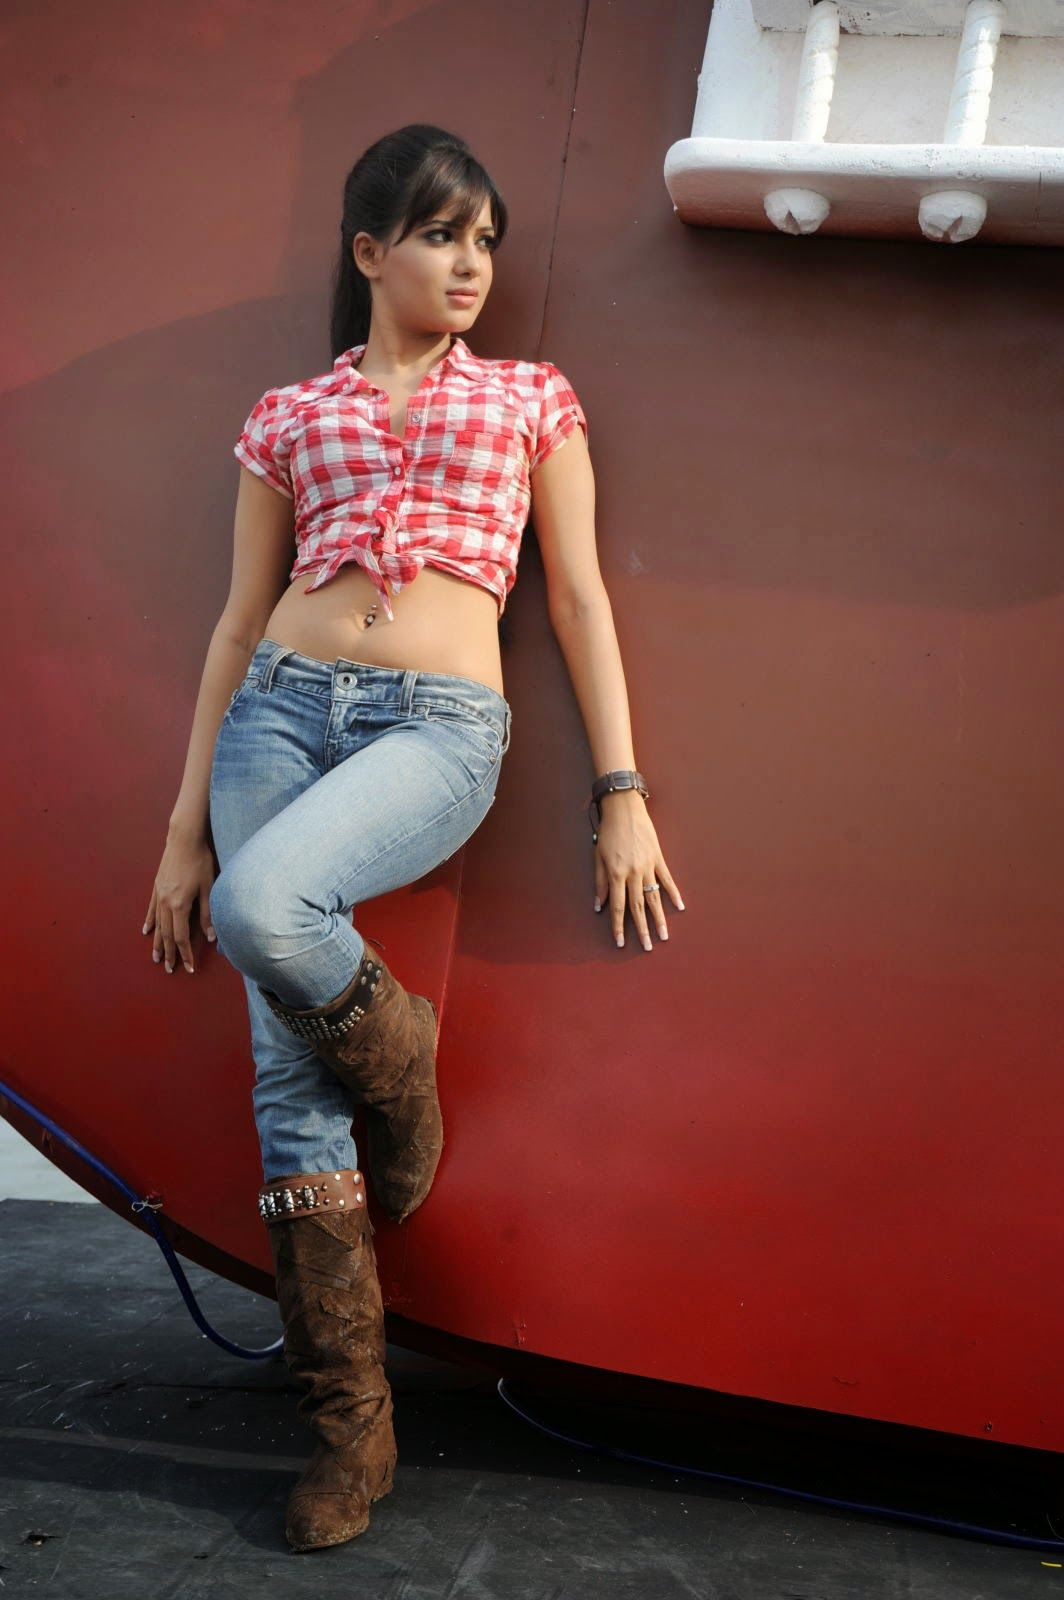 Telugu Actress Samantha Hot Navel and Back Show in Jeans ...